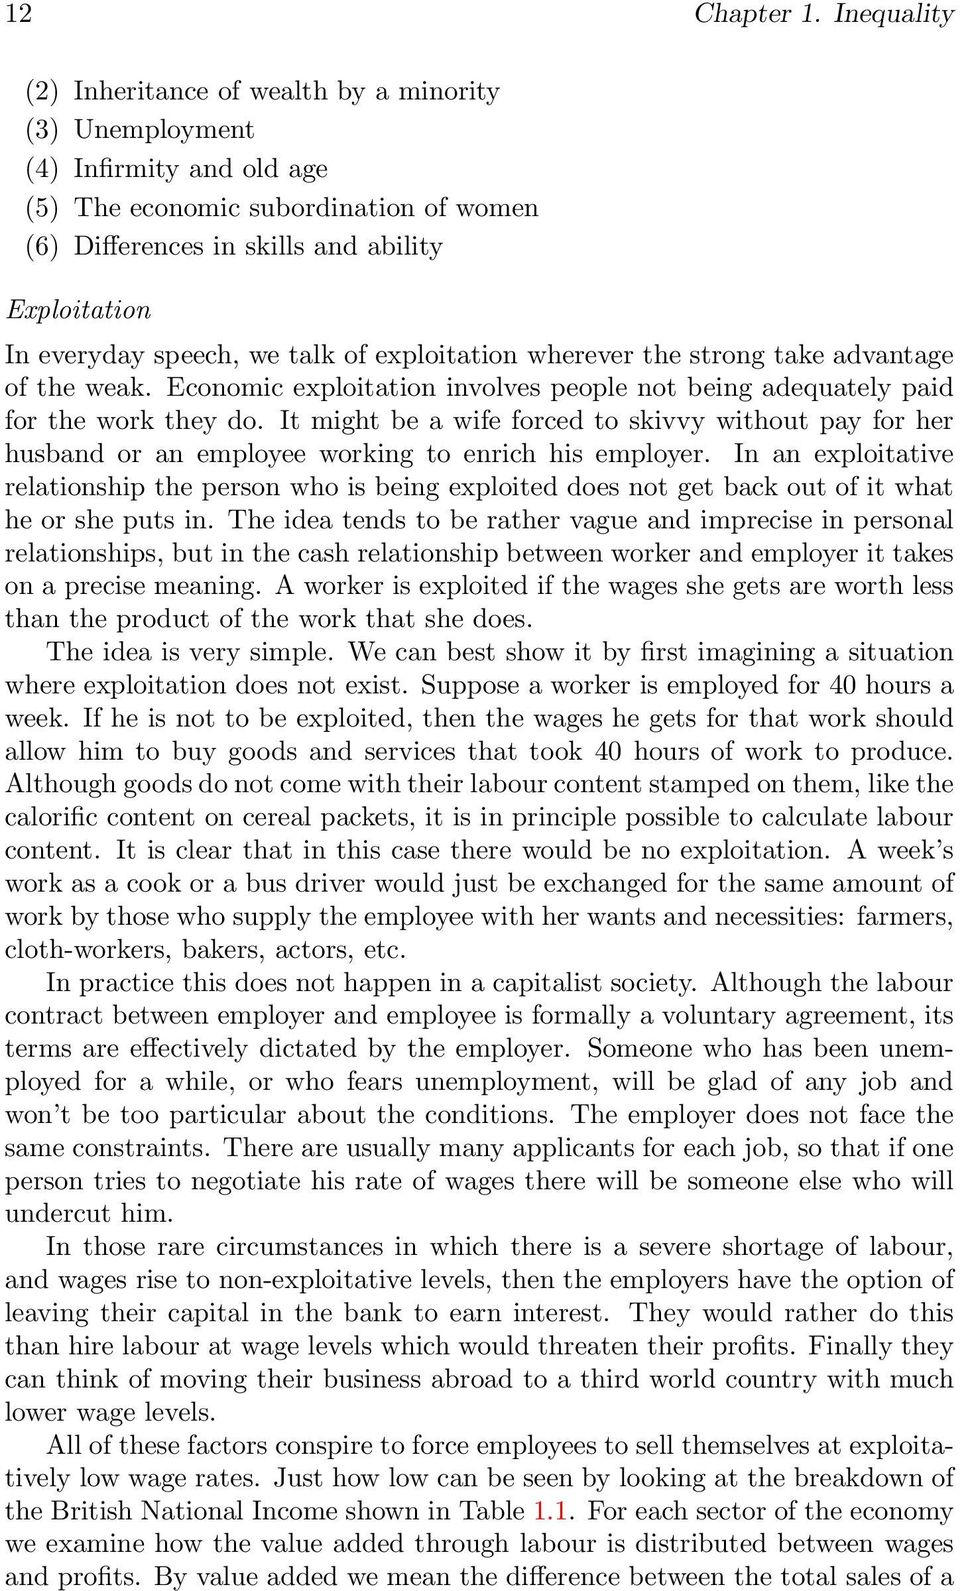 speech, we talk of exploitation wherever the strong take advantage of the weak. Economic exploitation involves people not being adequately paid for the work they do.